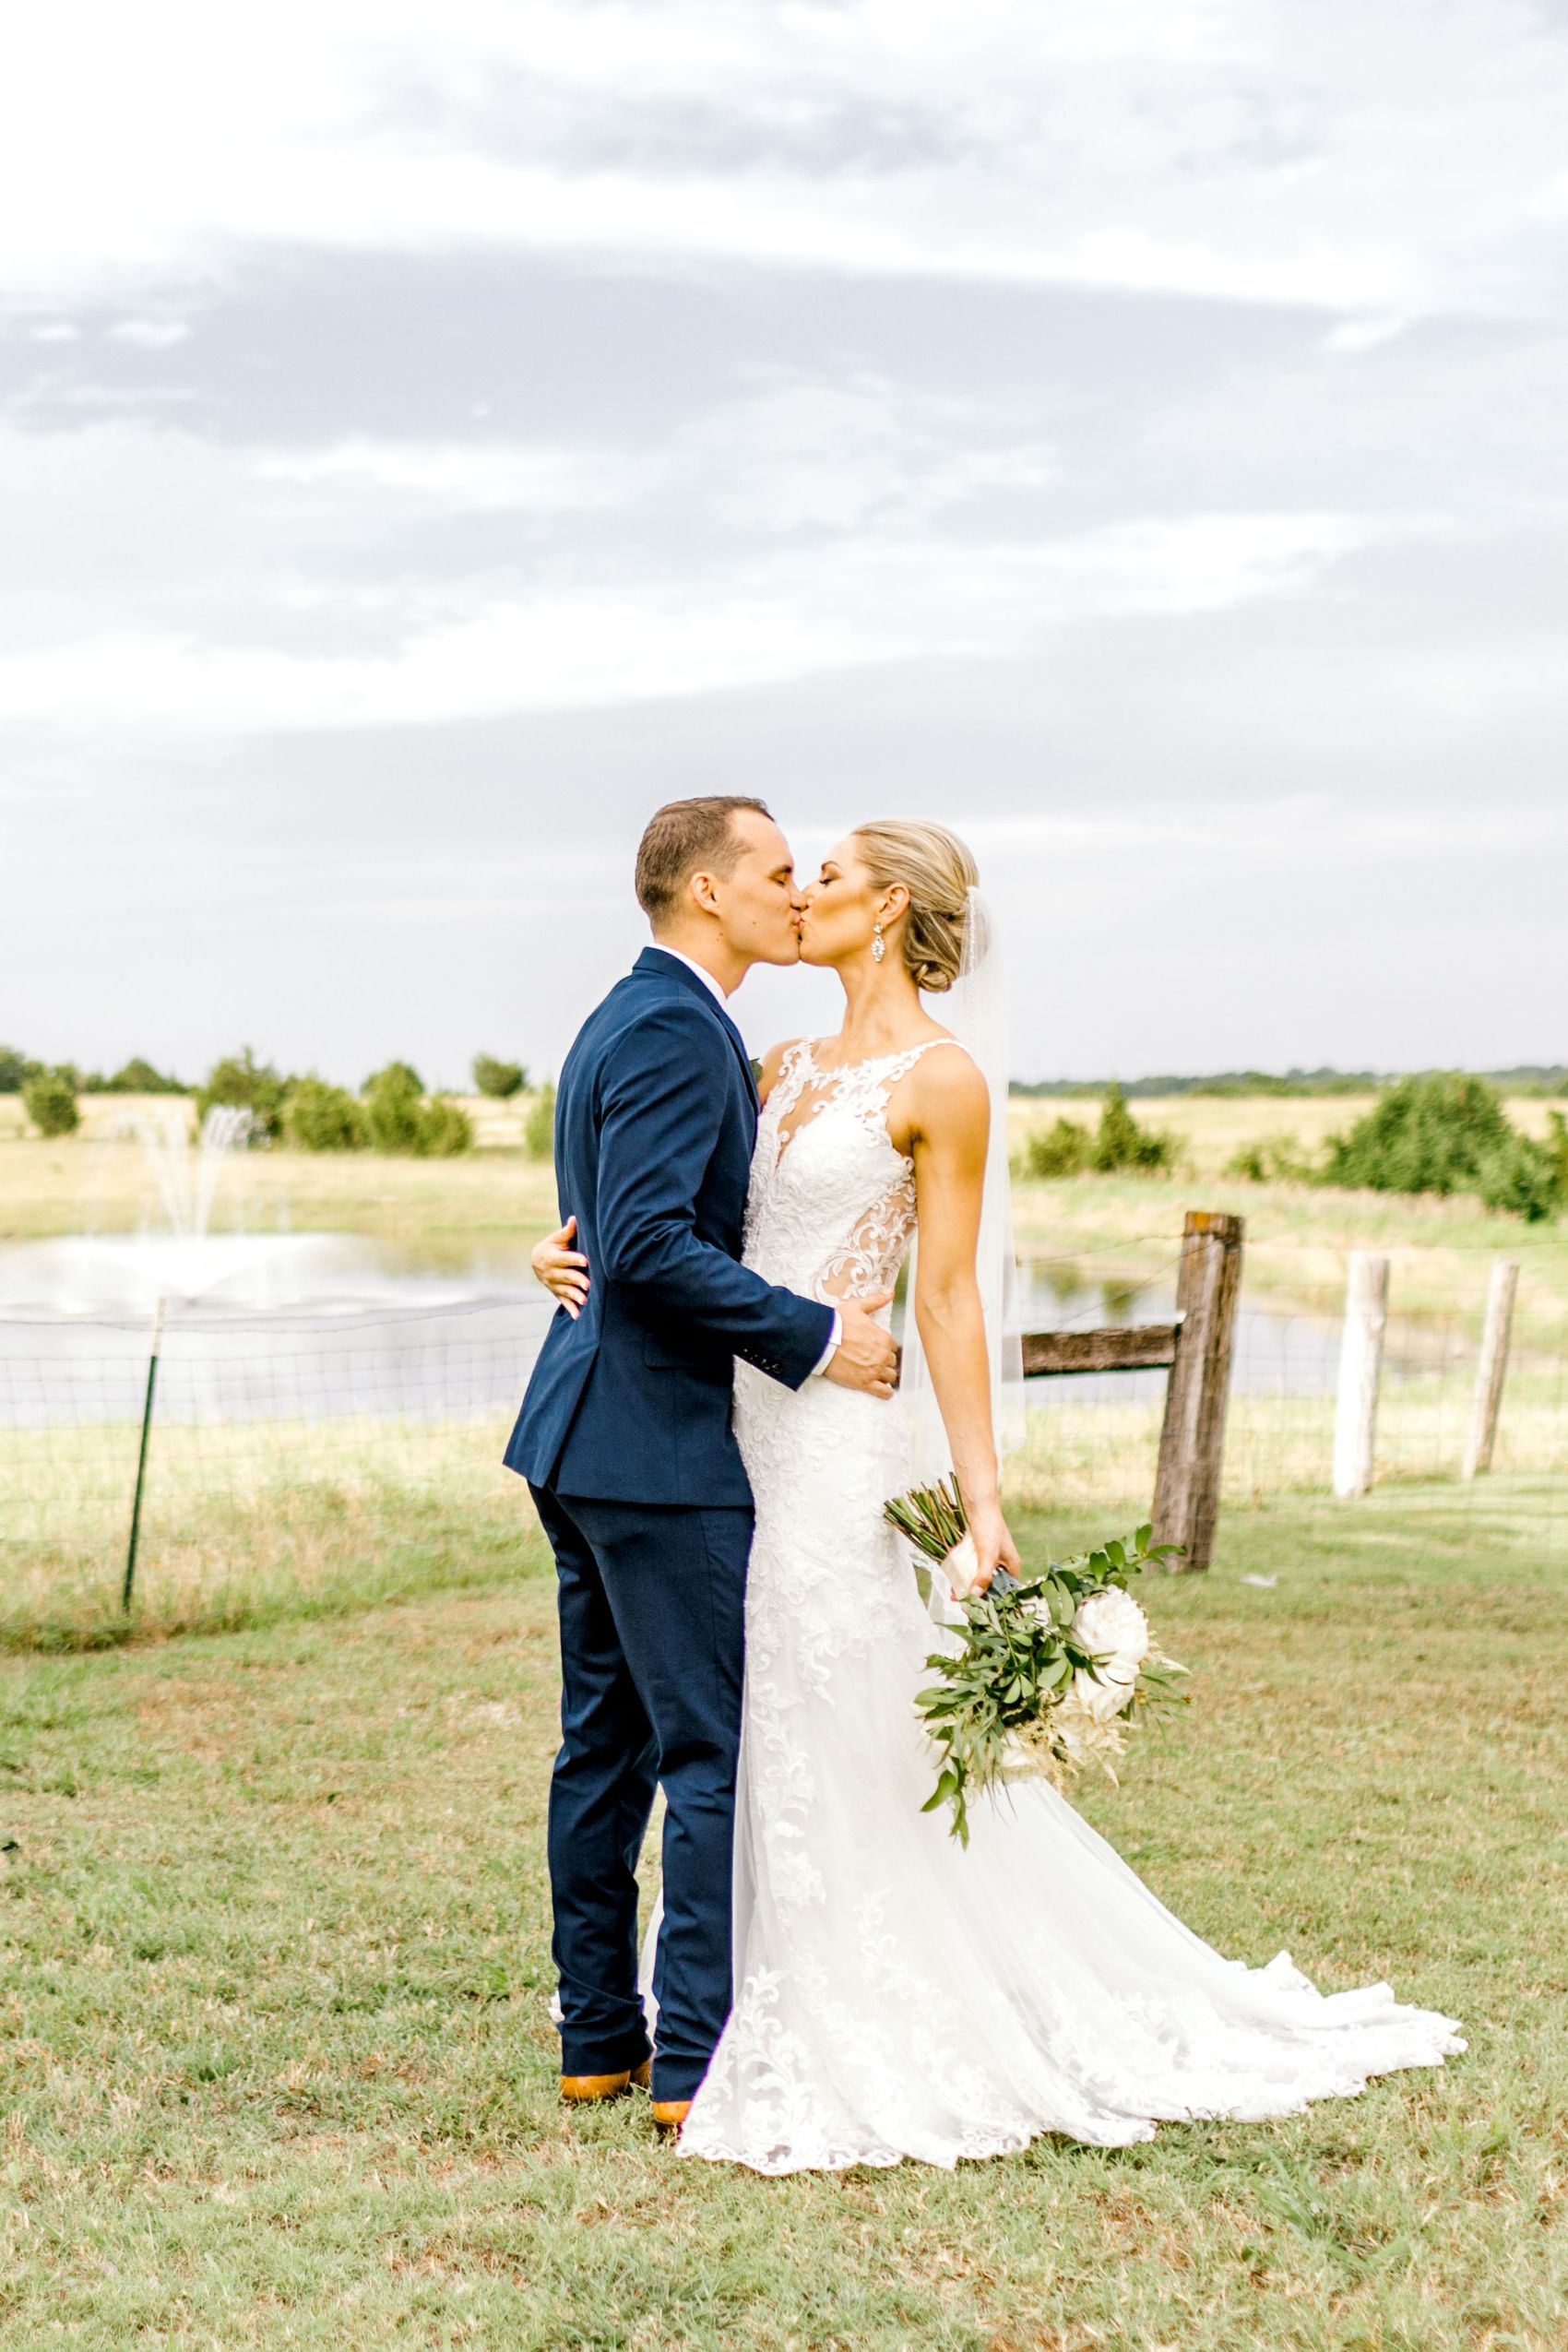 rustic-grace-estate-van-alstyne-wedding-06.22.19-37.jpg